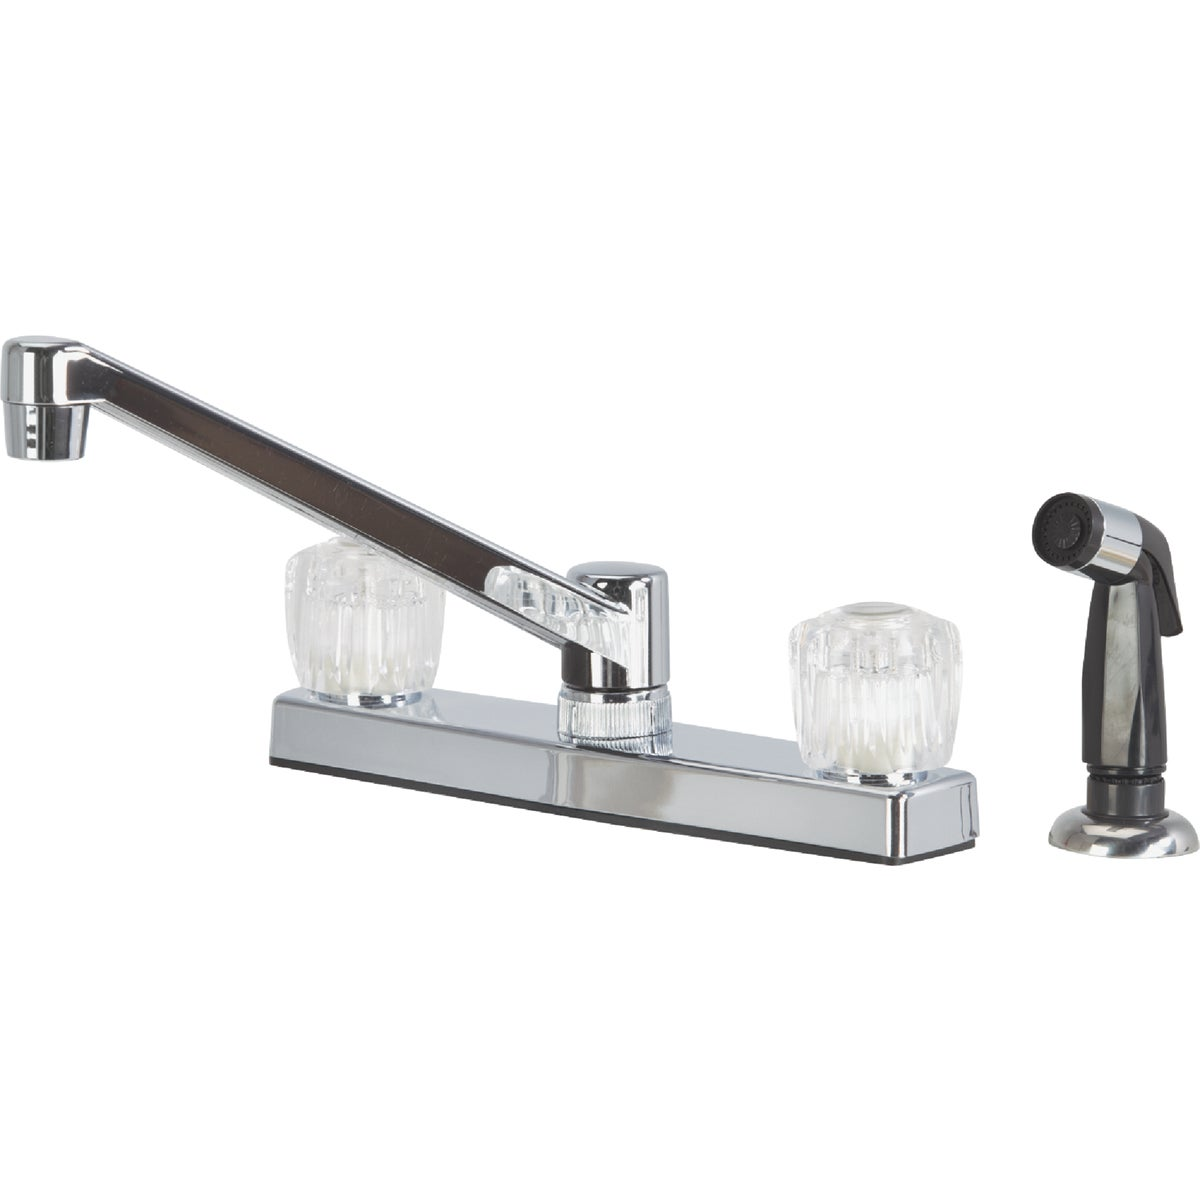 CHR FAUCET KIT W/SPRAY